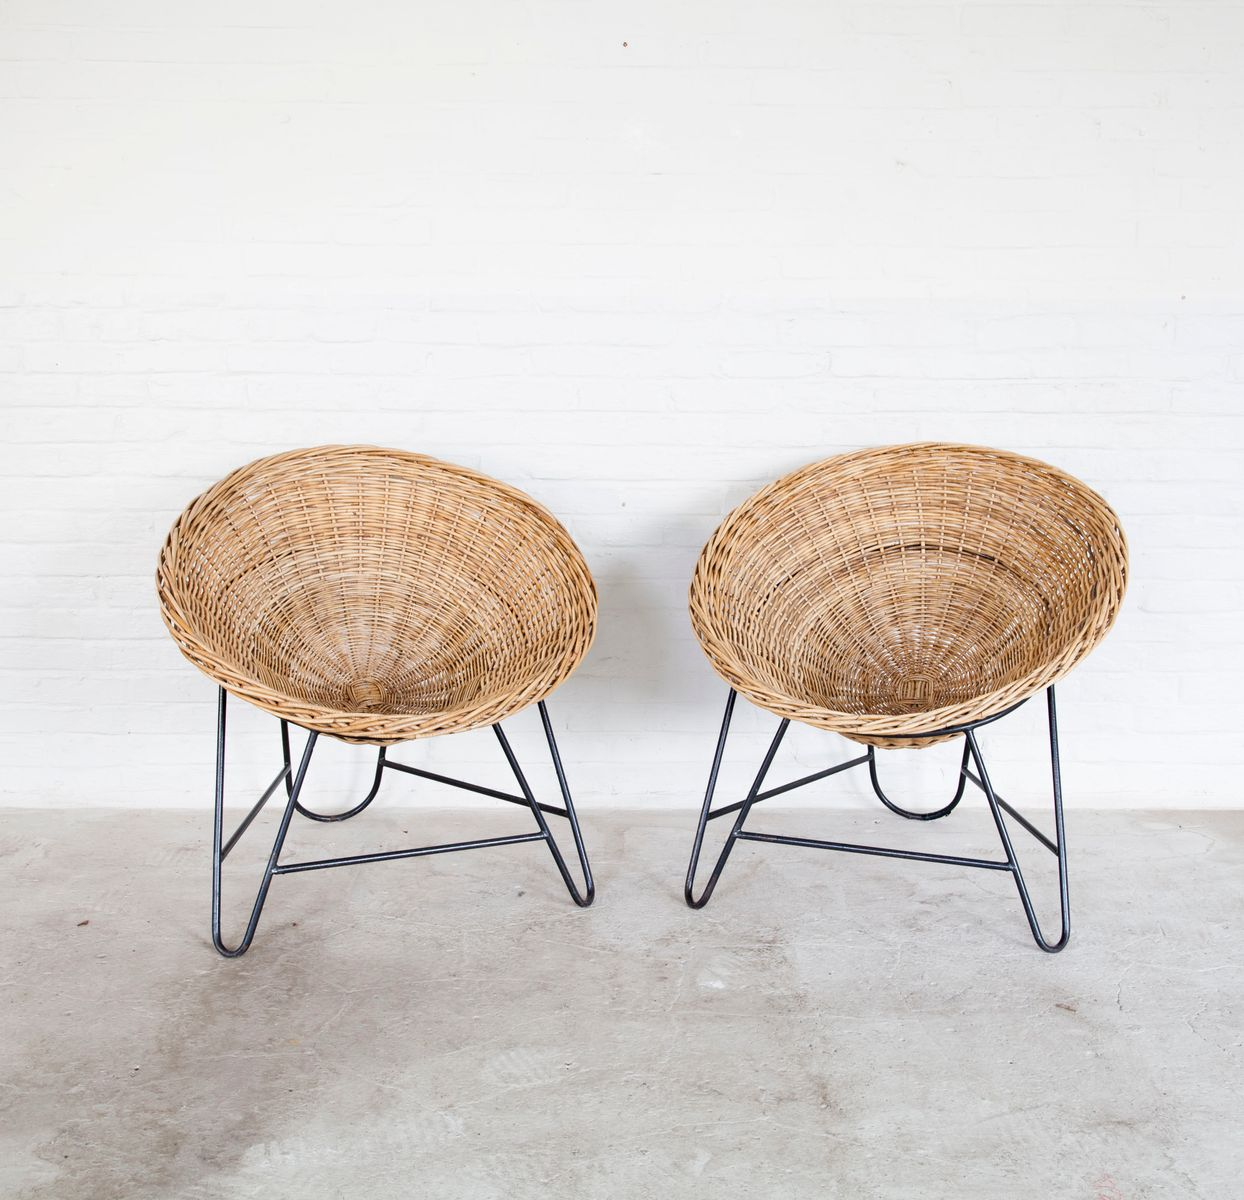 woven metal furniture. Vintage Woven Rattan Chairs With Metal Bases, Set Of 2 Furniture V